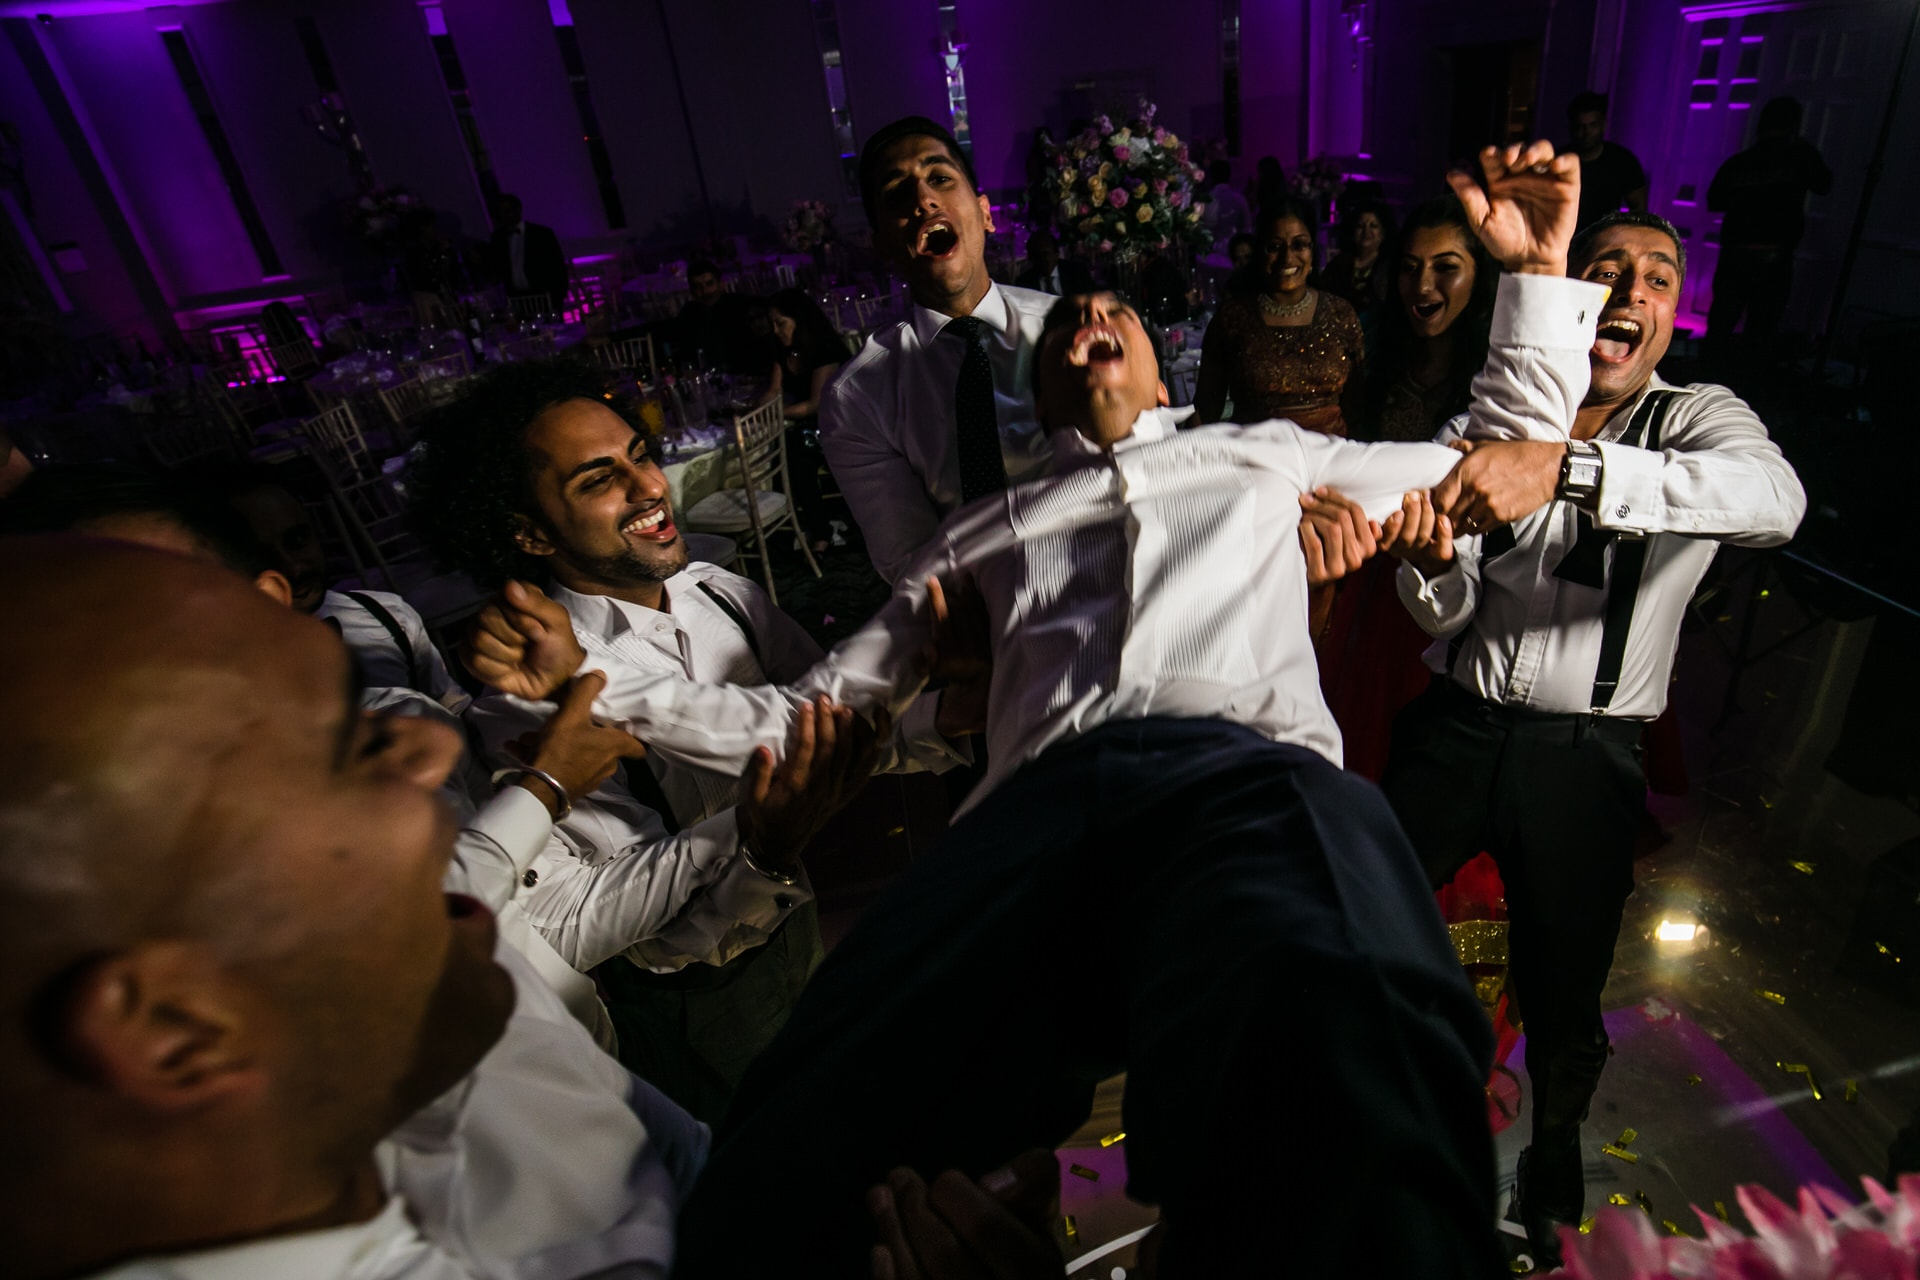 Wedding reception party at Sopwell House in St Albans, UK